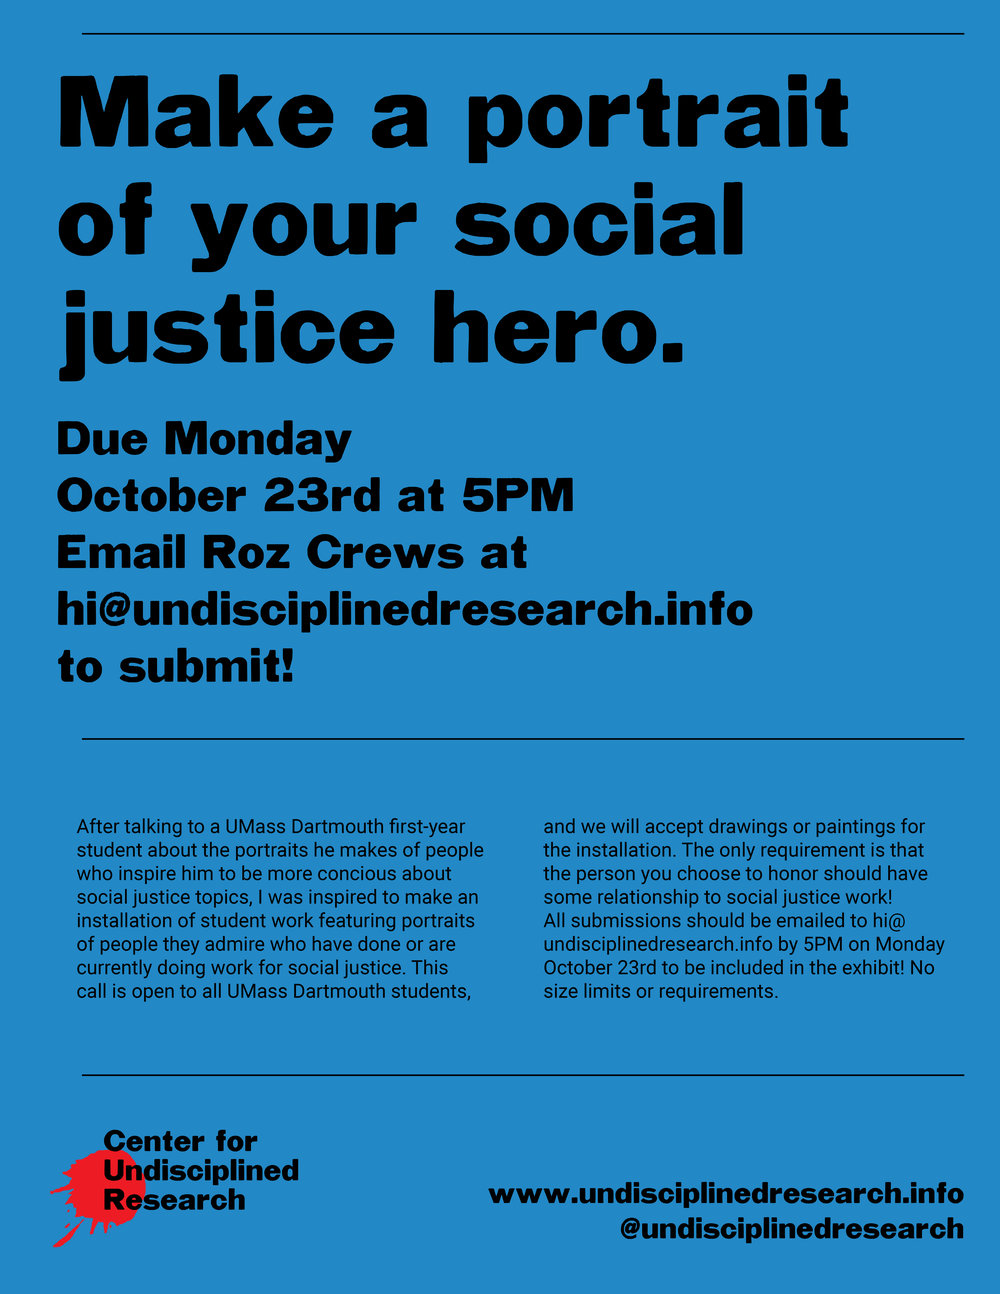 We also extended the social justice hero portrait deadline to October 23rd! Please submit.